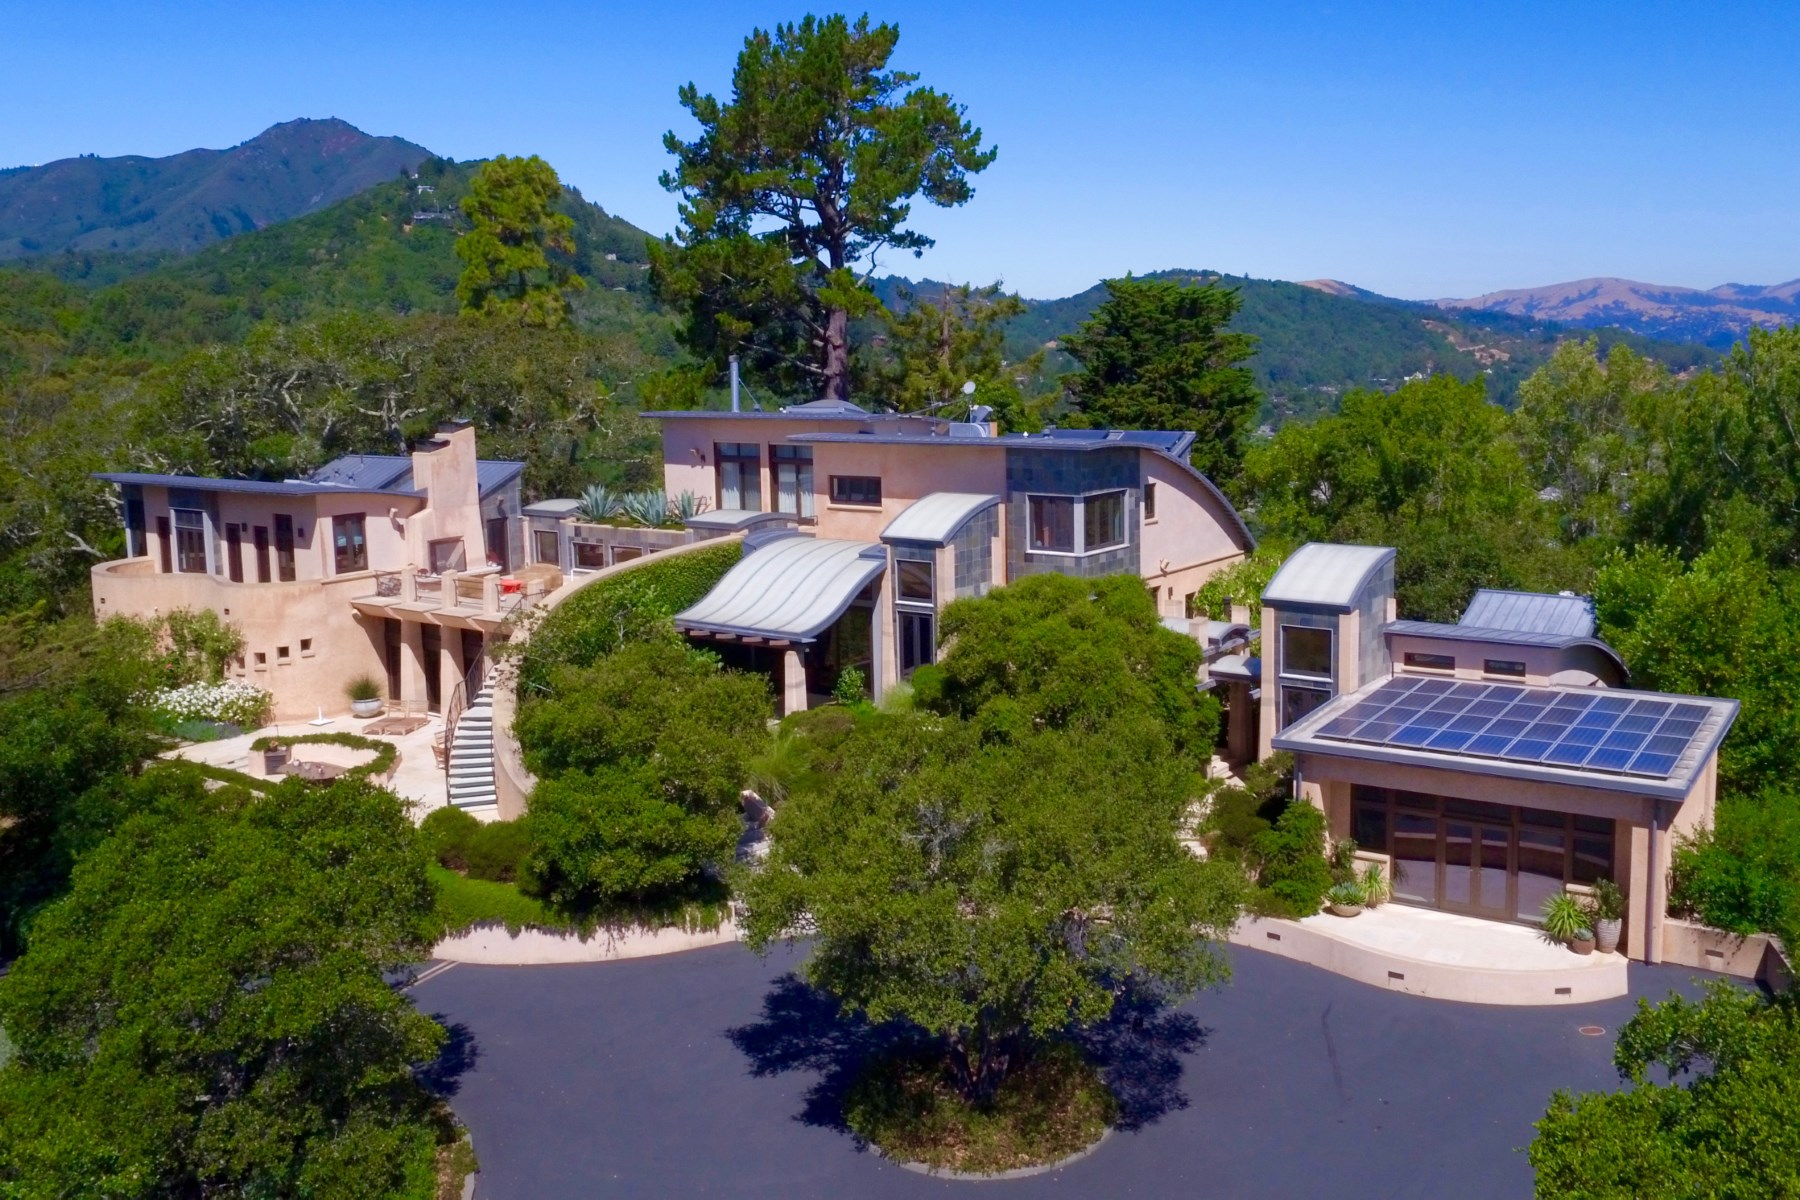 Maison unifamiliale pour l Vente à Unprecedented Approx. 11-Acre Compound Corte Madera, Californie, 94925 États-Unis